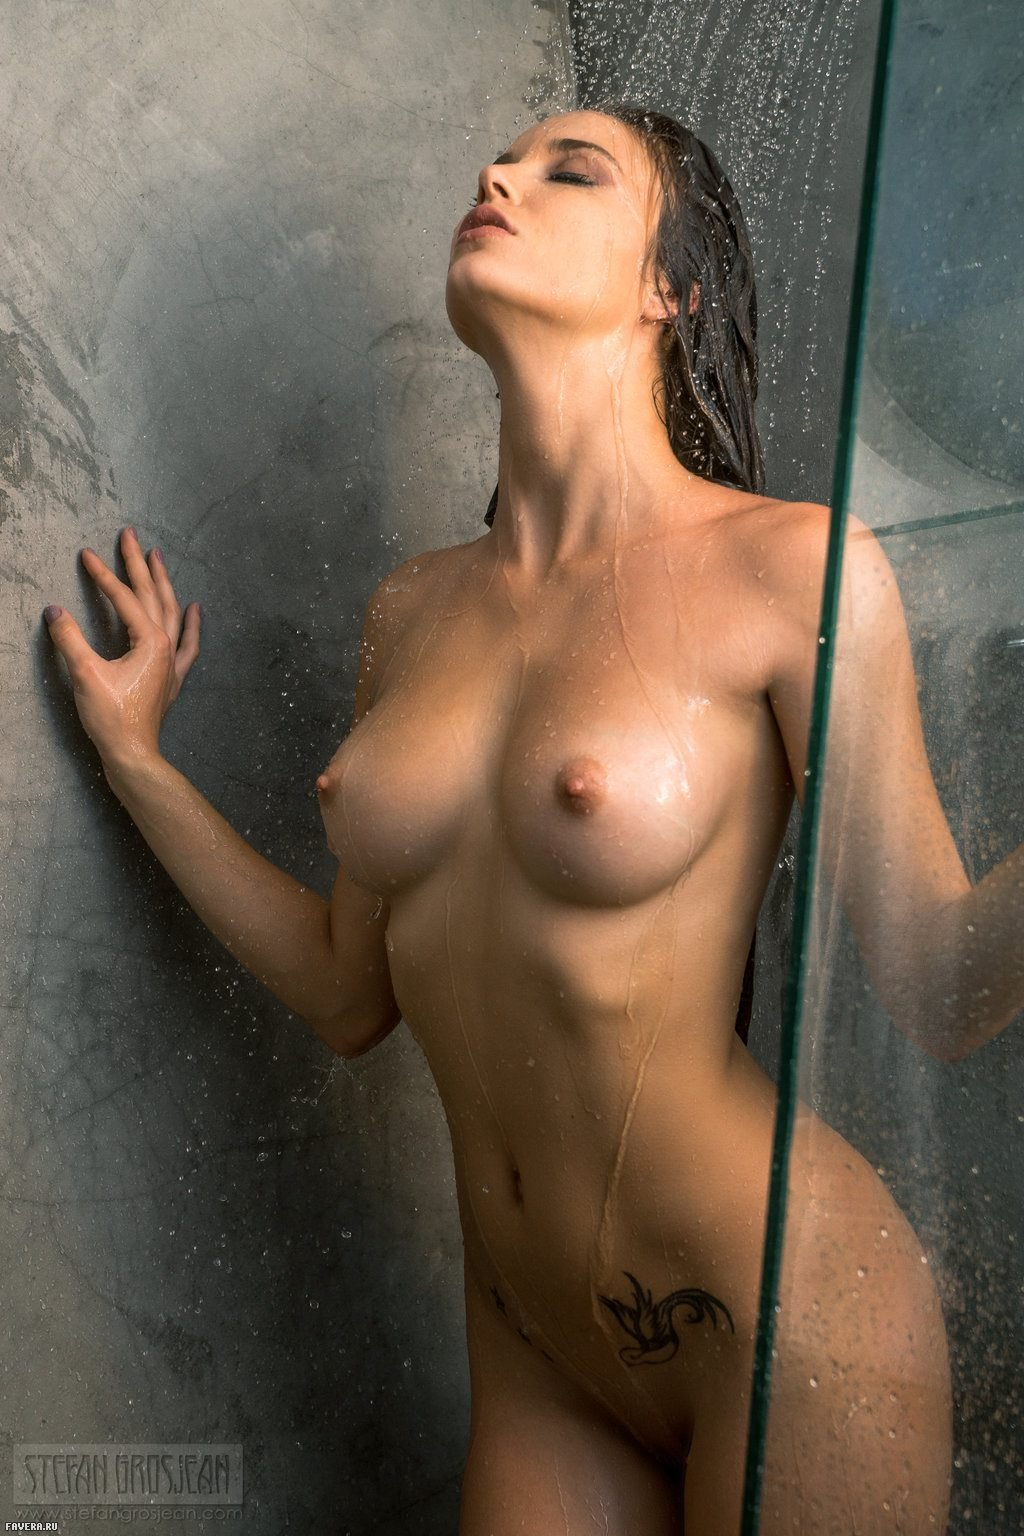 Naked Girls In Shower With Sexy Body Pics